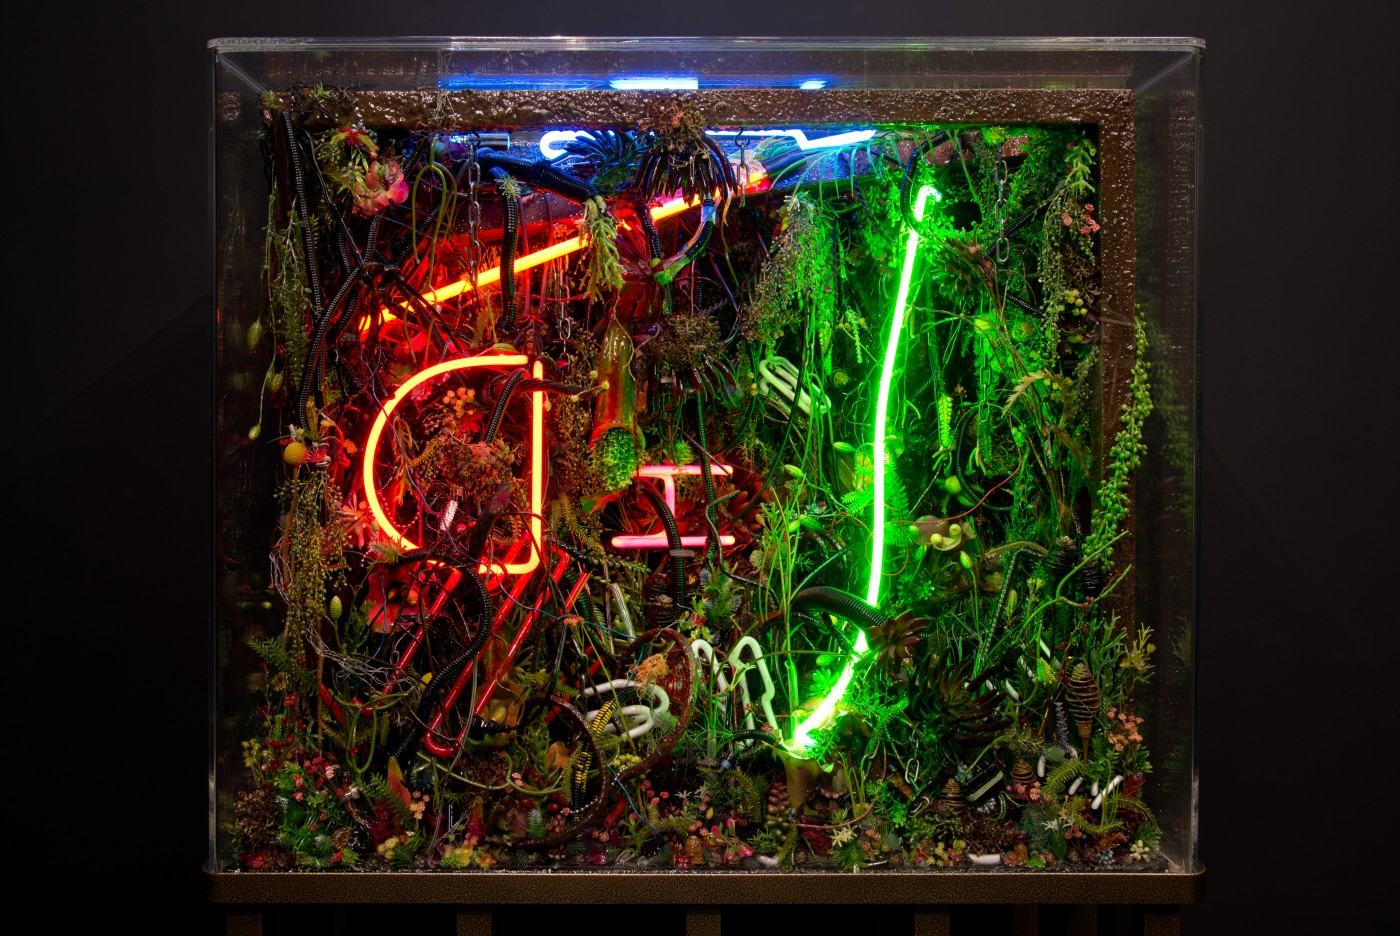 NATURE THEATER OF VIOLENT SUCCESSION  The Extinction of Neon 2</I>, 2015 (detail) Acrylic terrarium, modeled landscape, used and broken neon signs, plastic flora, gallows structure, automotive detritus, steel chains, GTO wires, found objects, insect and animal matter, polymer resin, custom aluminum stand 